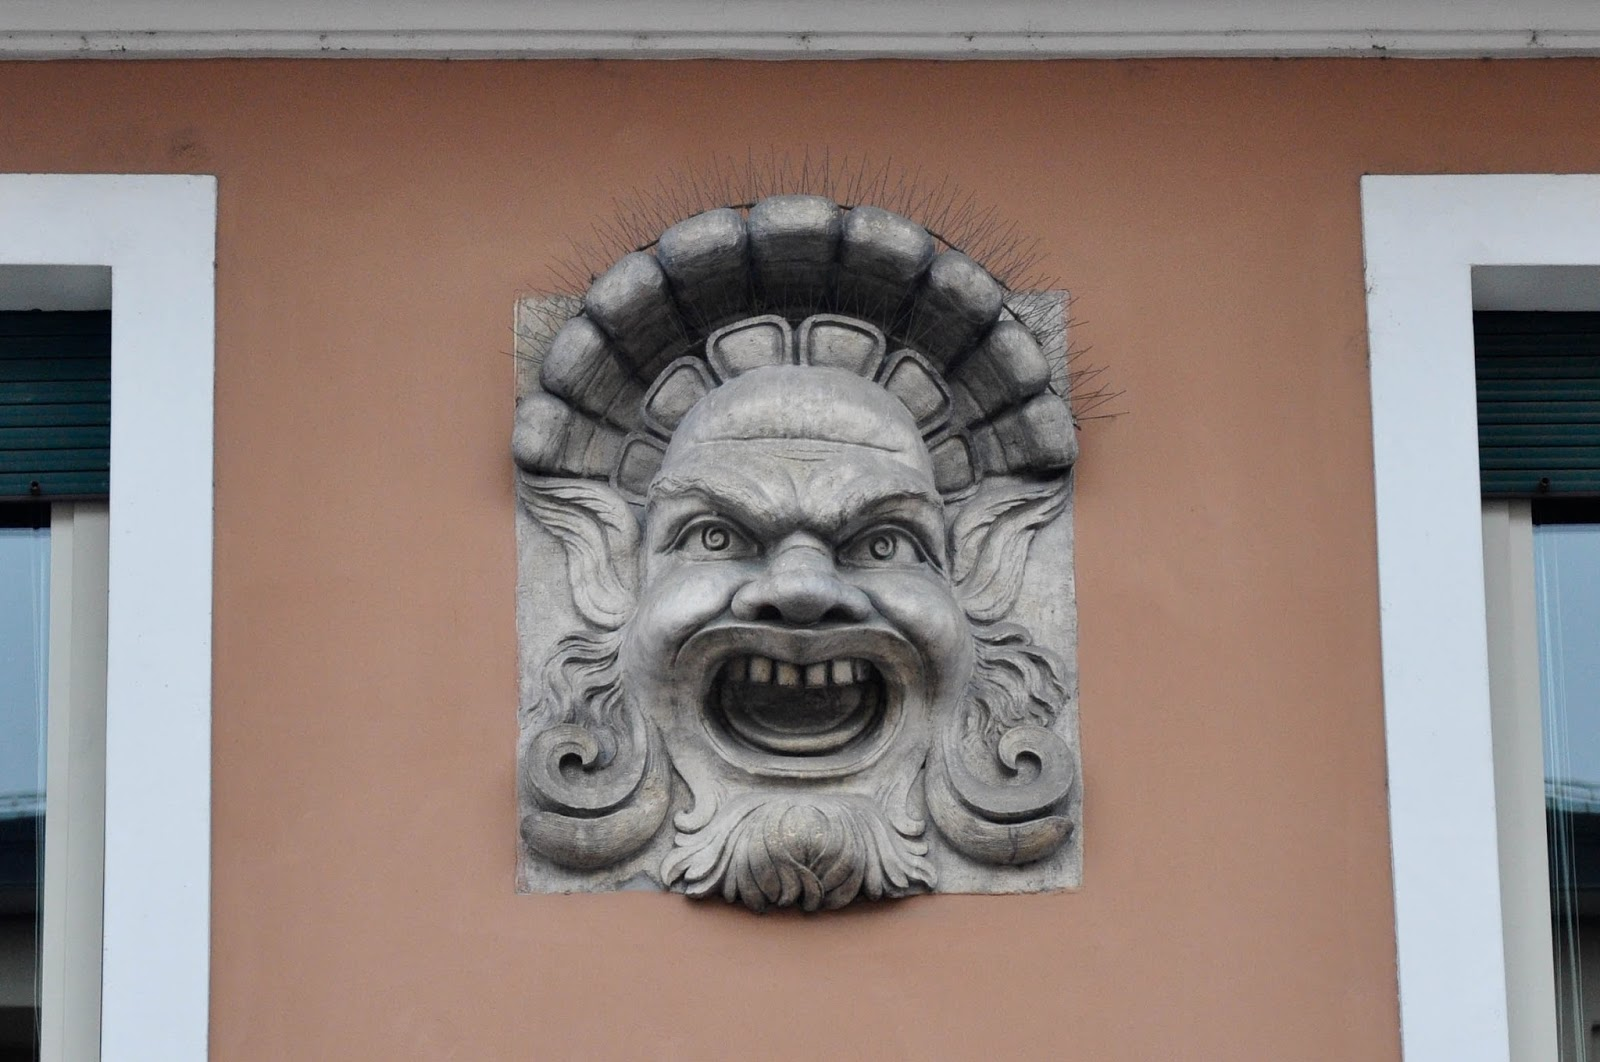 An angry face on the facade of a building in Vicenza, Veneto, Italy